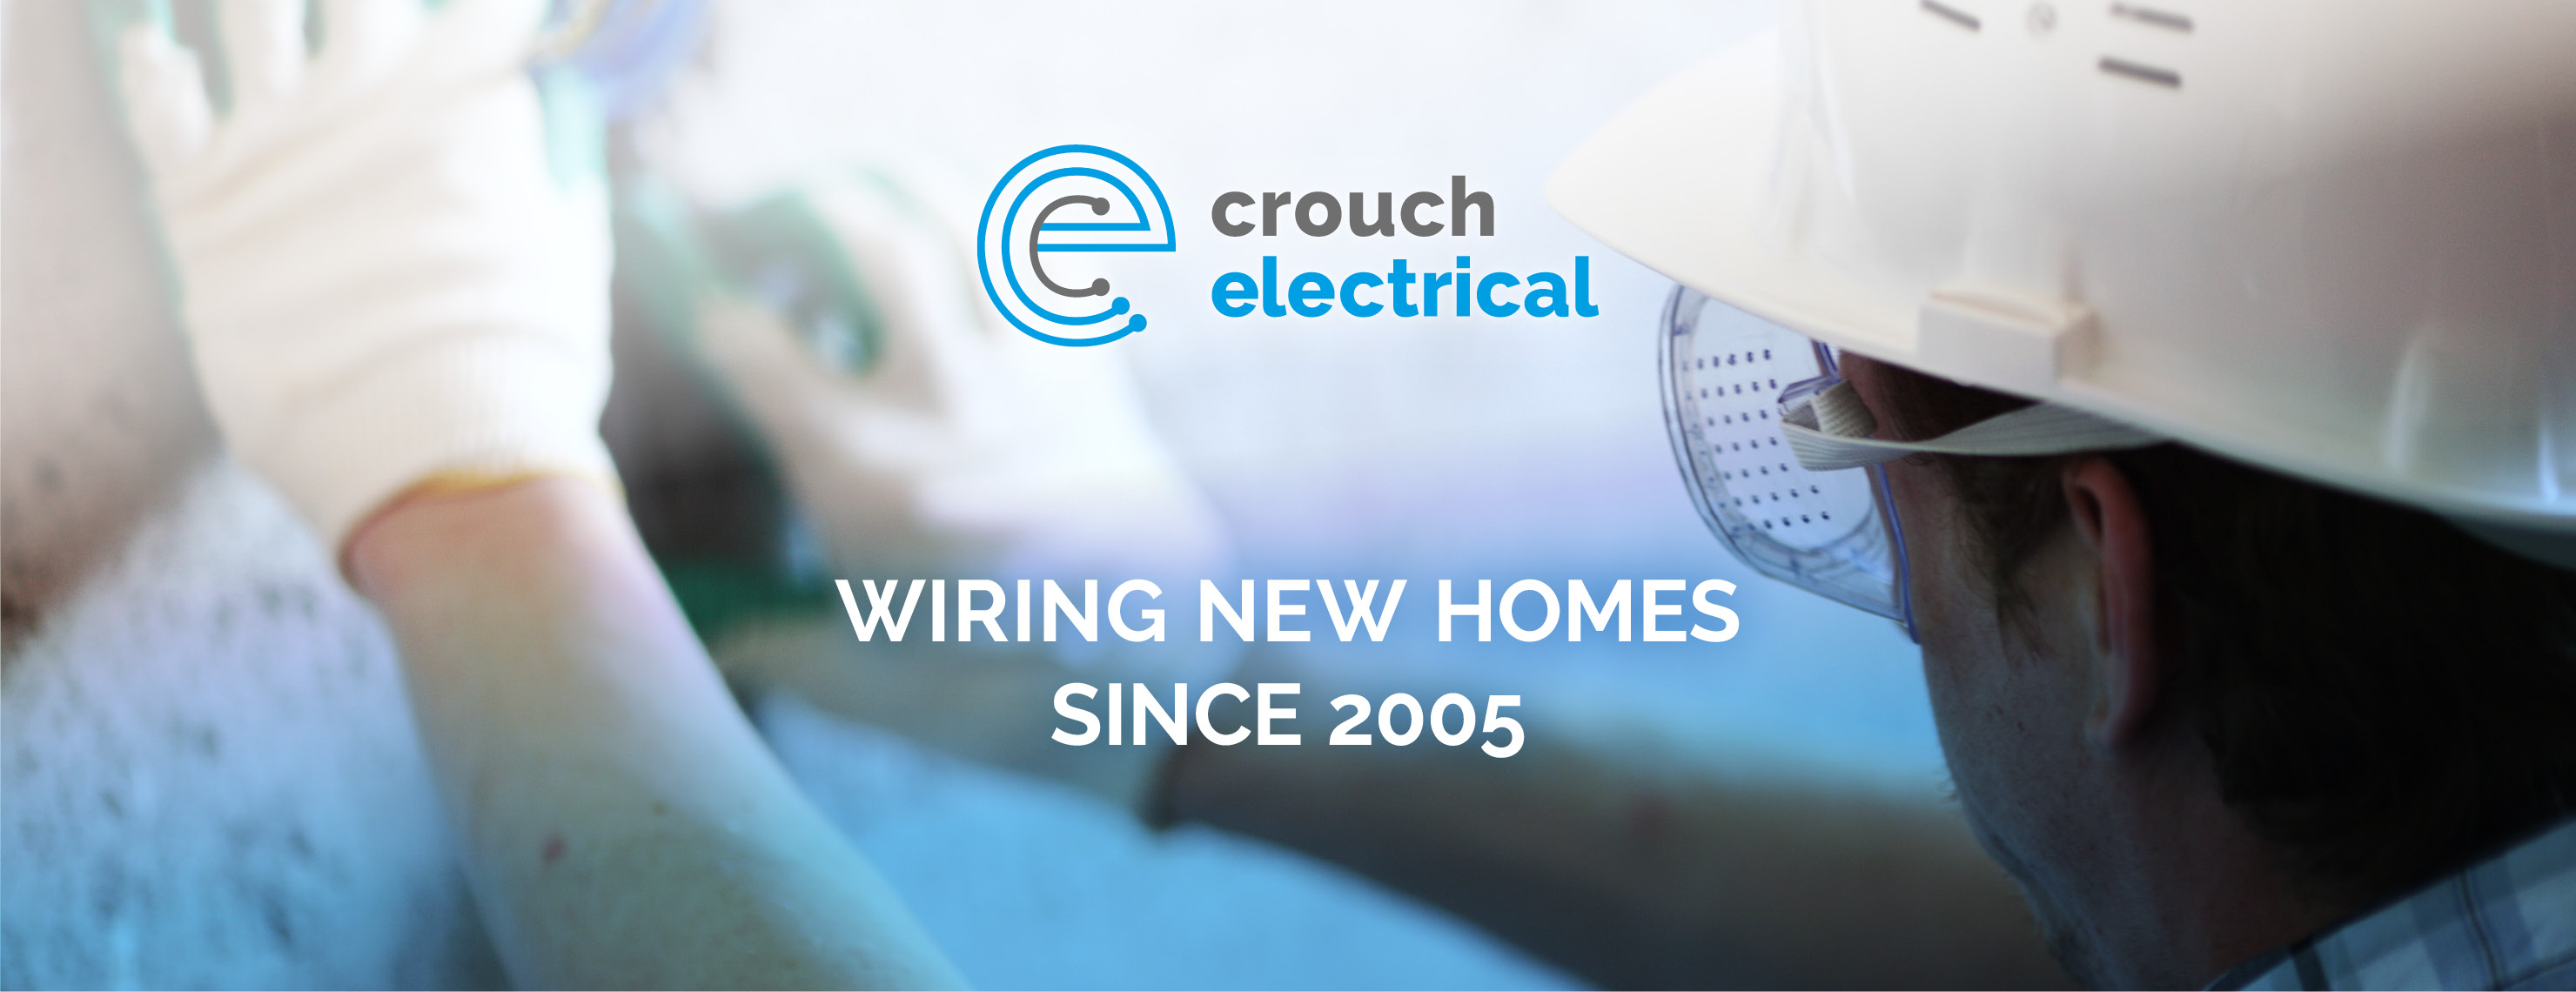 Wiring New Homes Since 2005